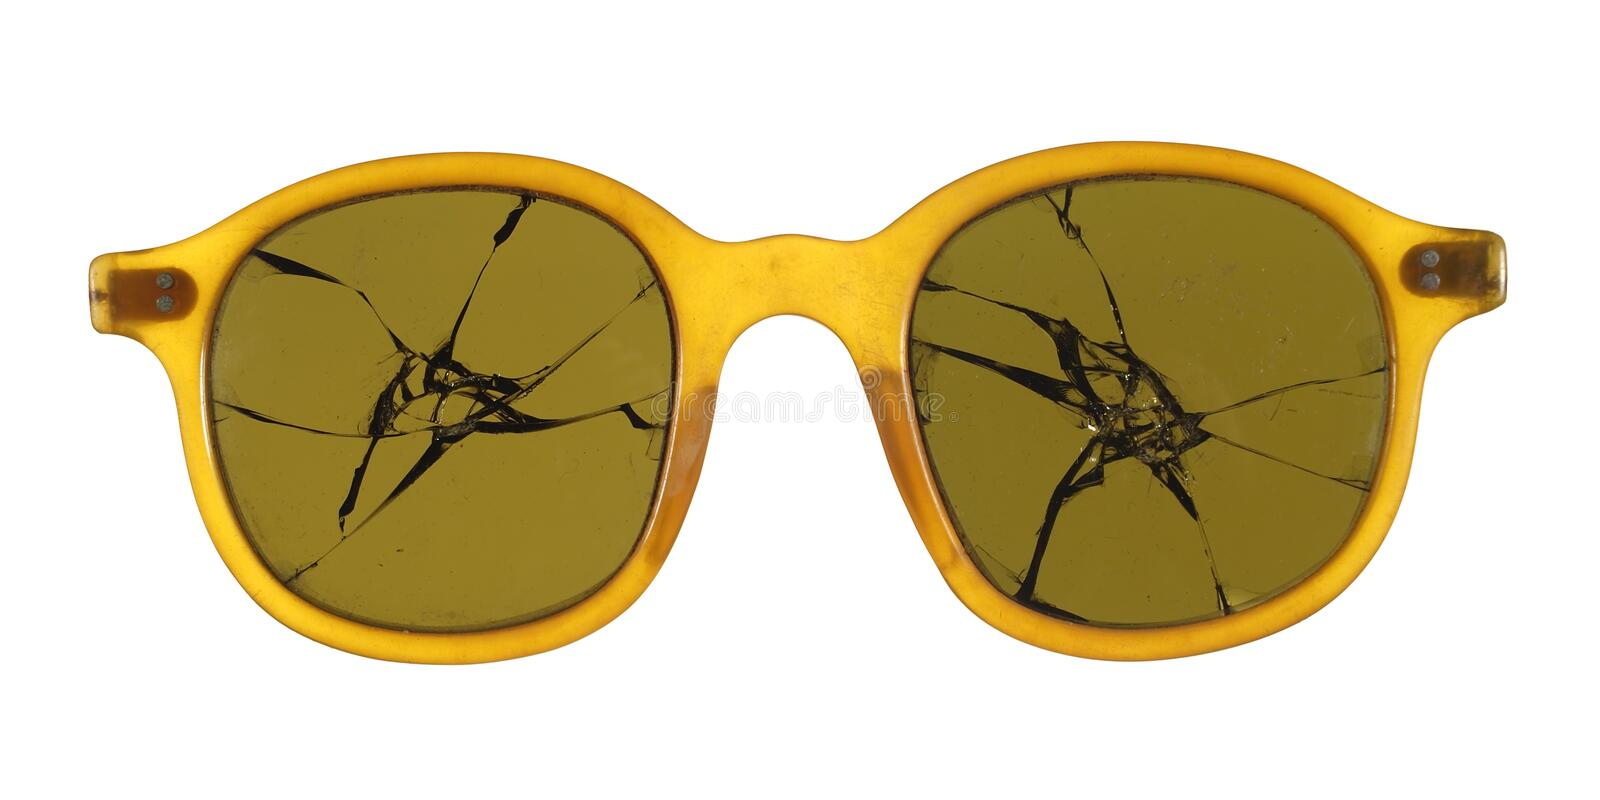 Broken sunglasses fashioned from plastic isolated on white background. royalty free stock photos